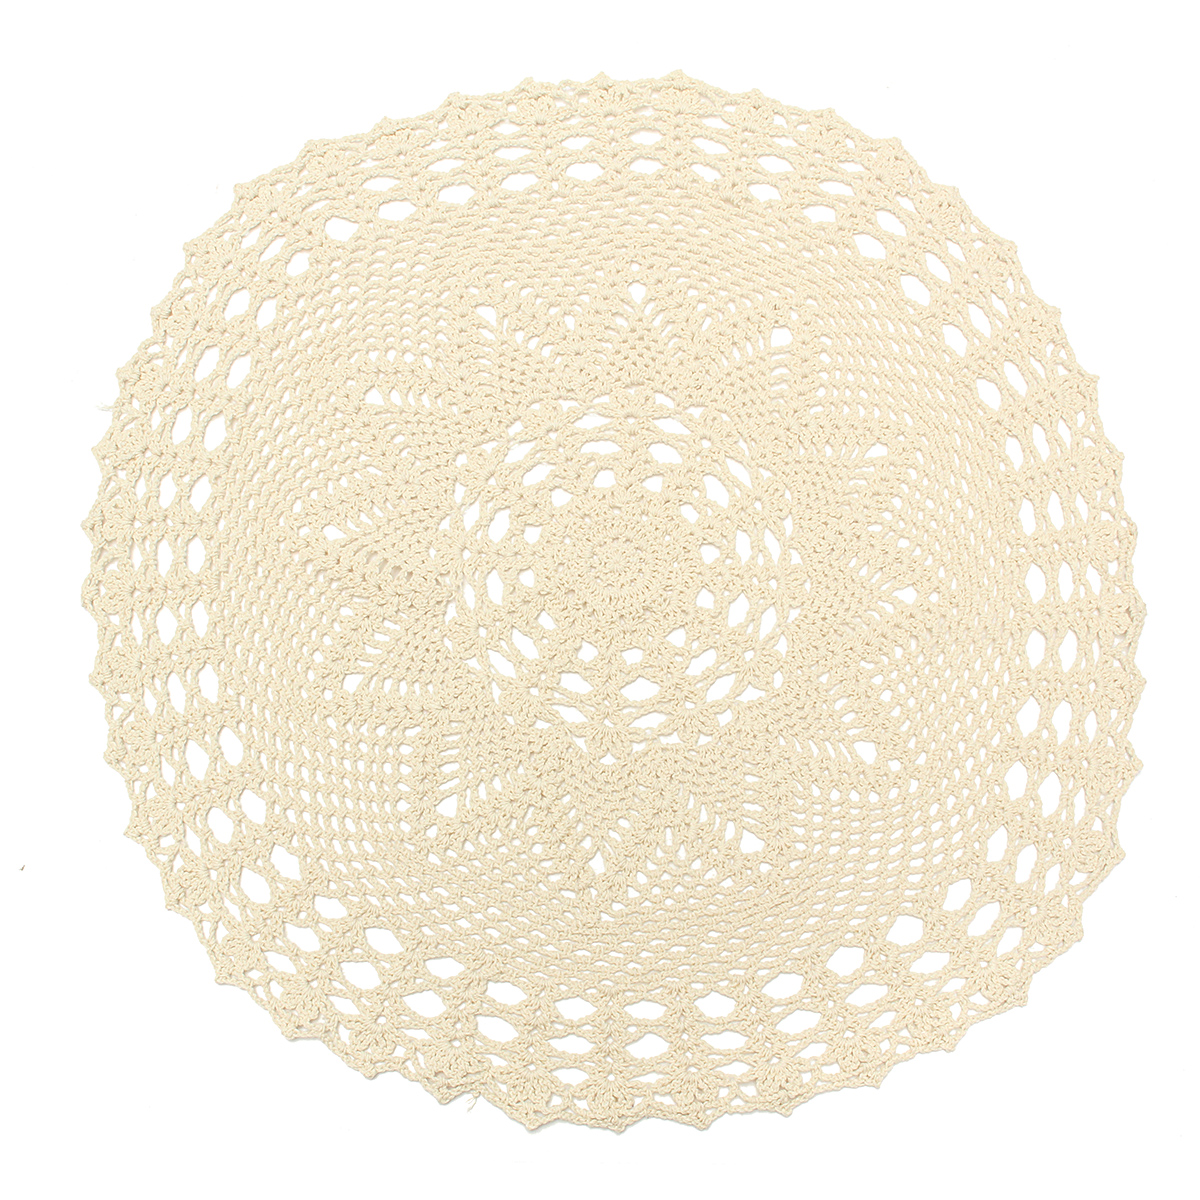 Meigar 21.65'' Vintage Round Handmade Cotton Crochet Doilies,Ecru Round Crocheted Lace Cloth Fabric Doilies Placemats Table Mat Doily